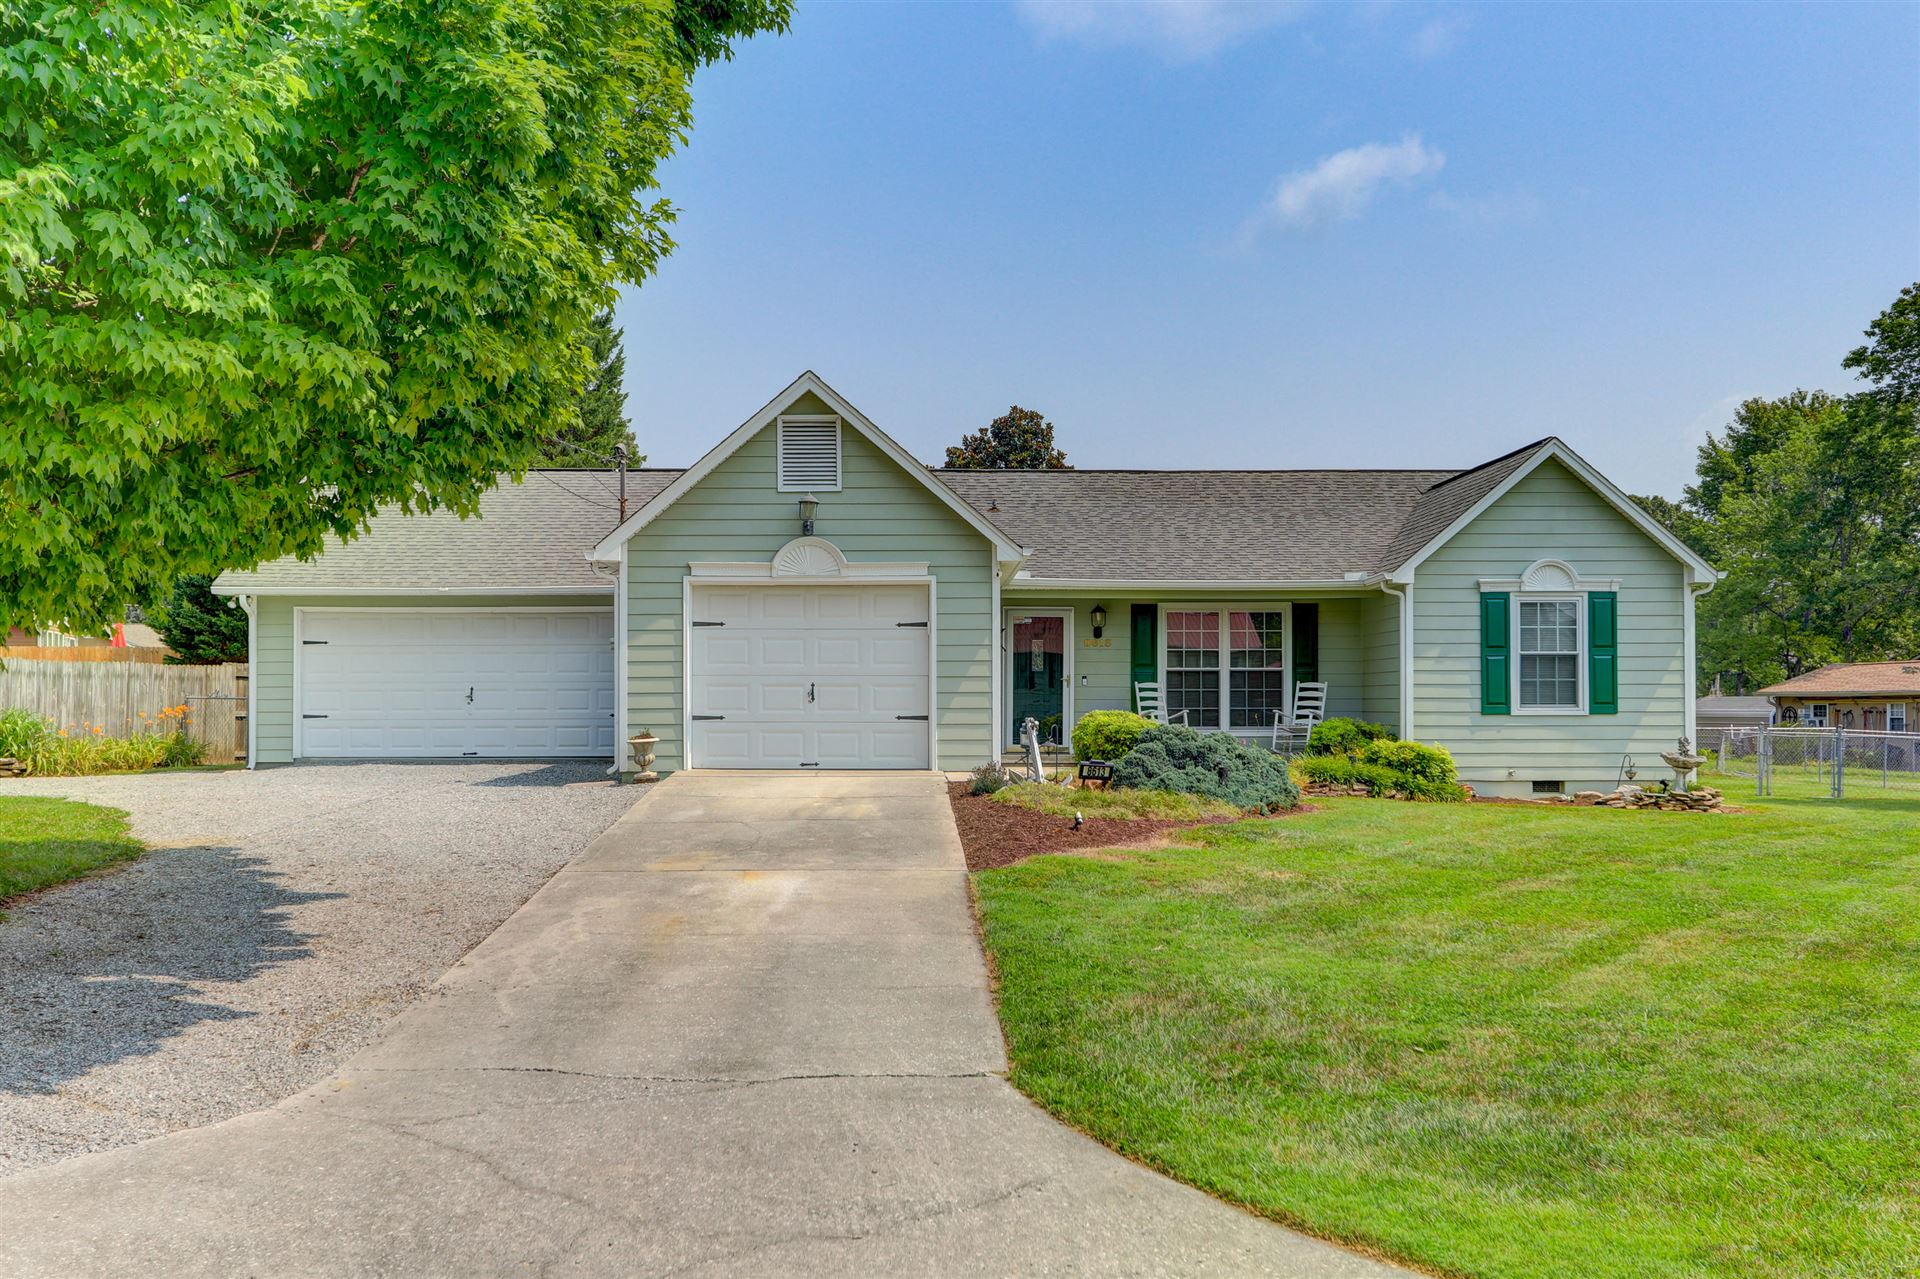 Photo of 8613 Royal Oaks Drive, Knoxville, TN 37931 (MLS # 1161398)